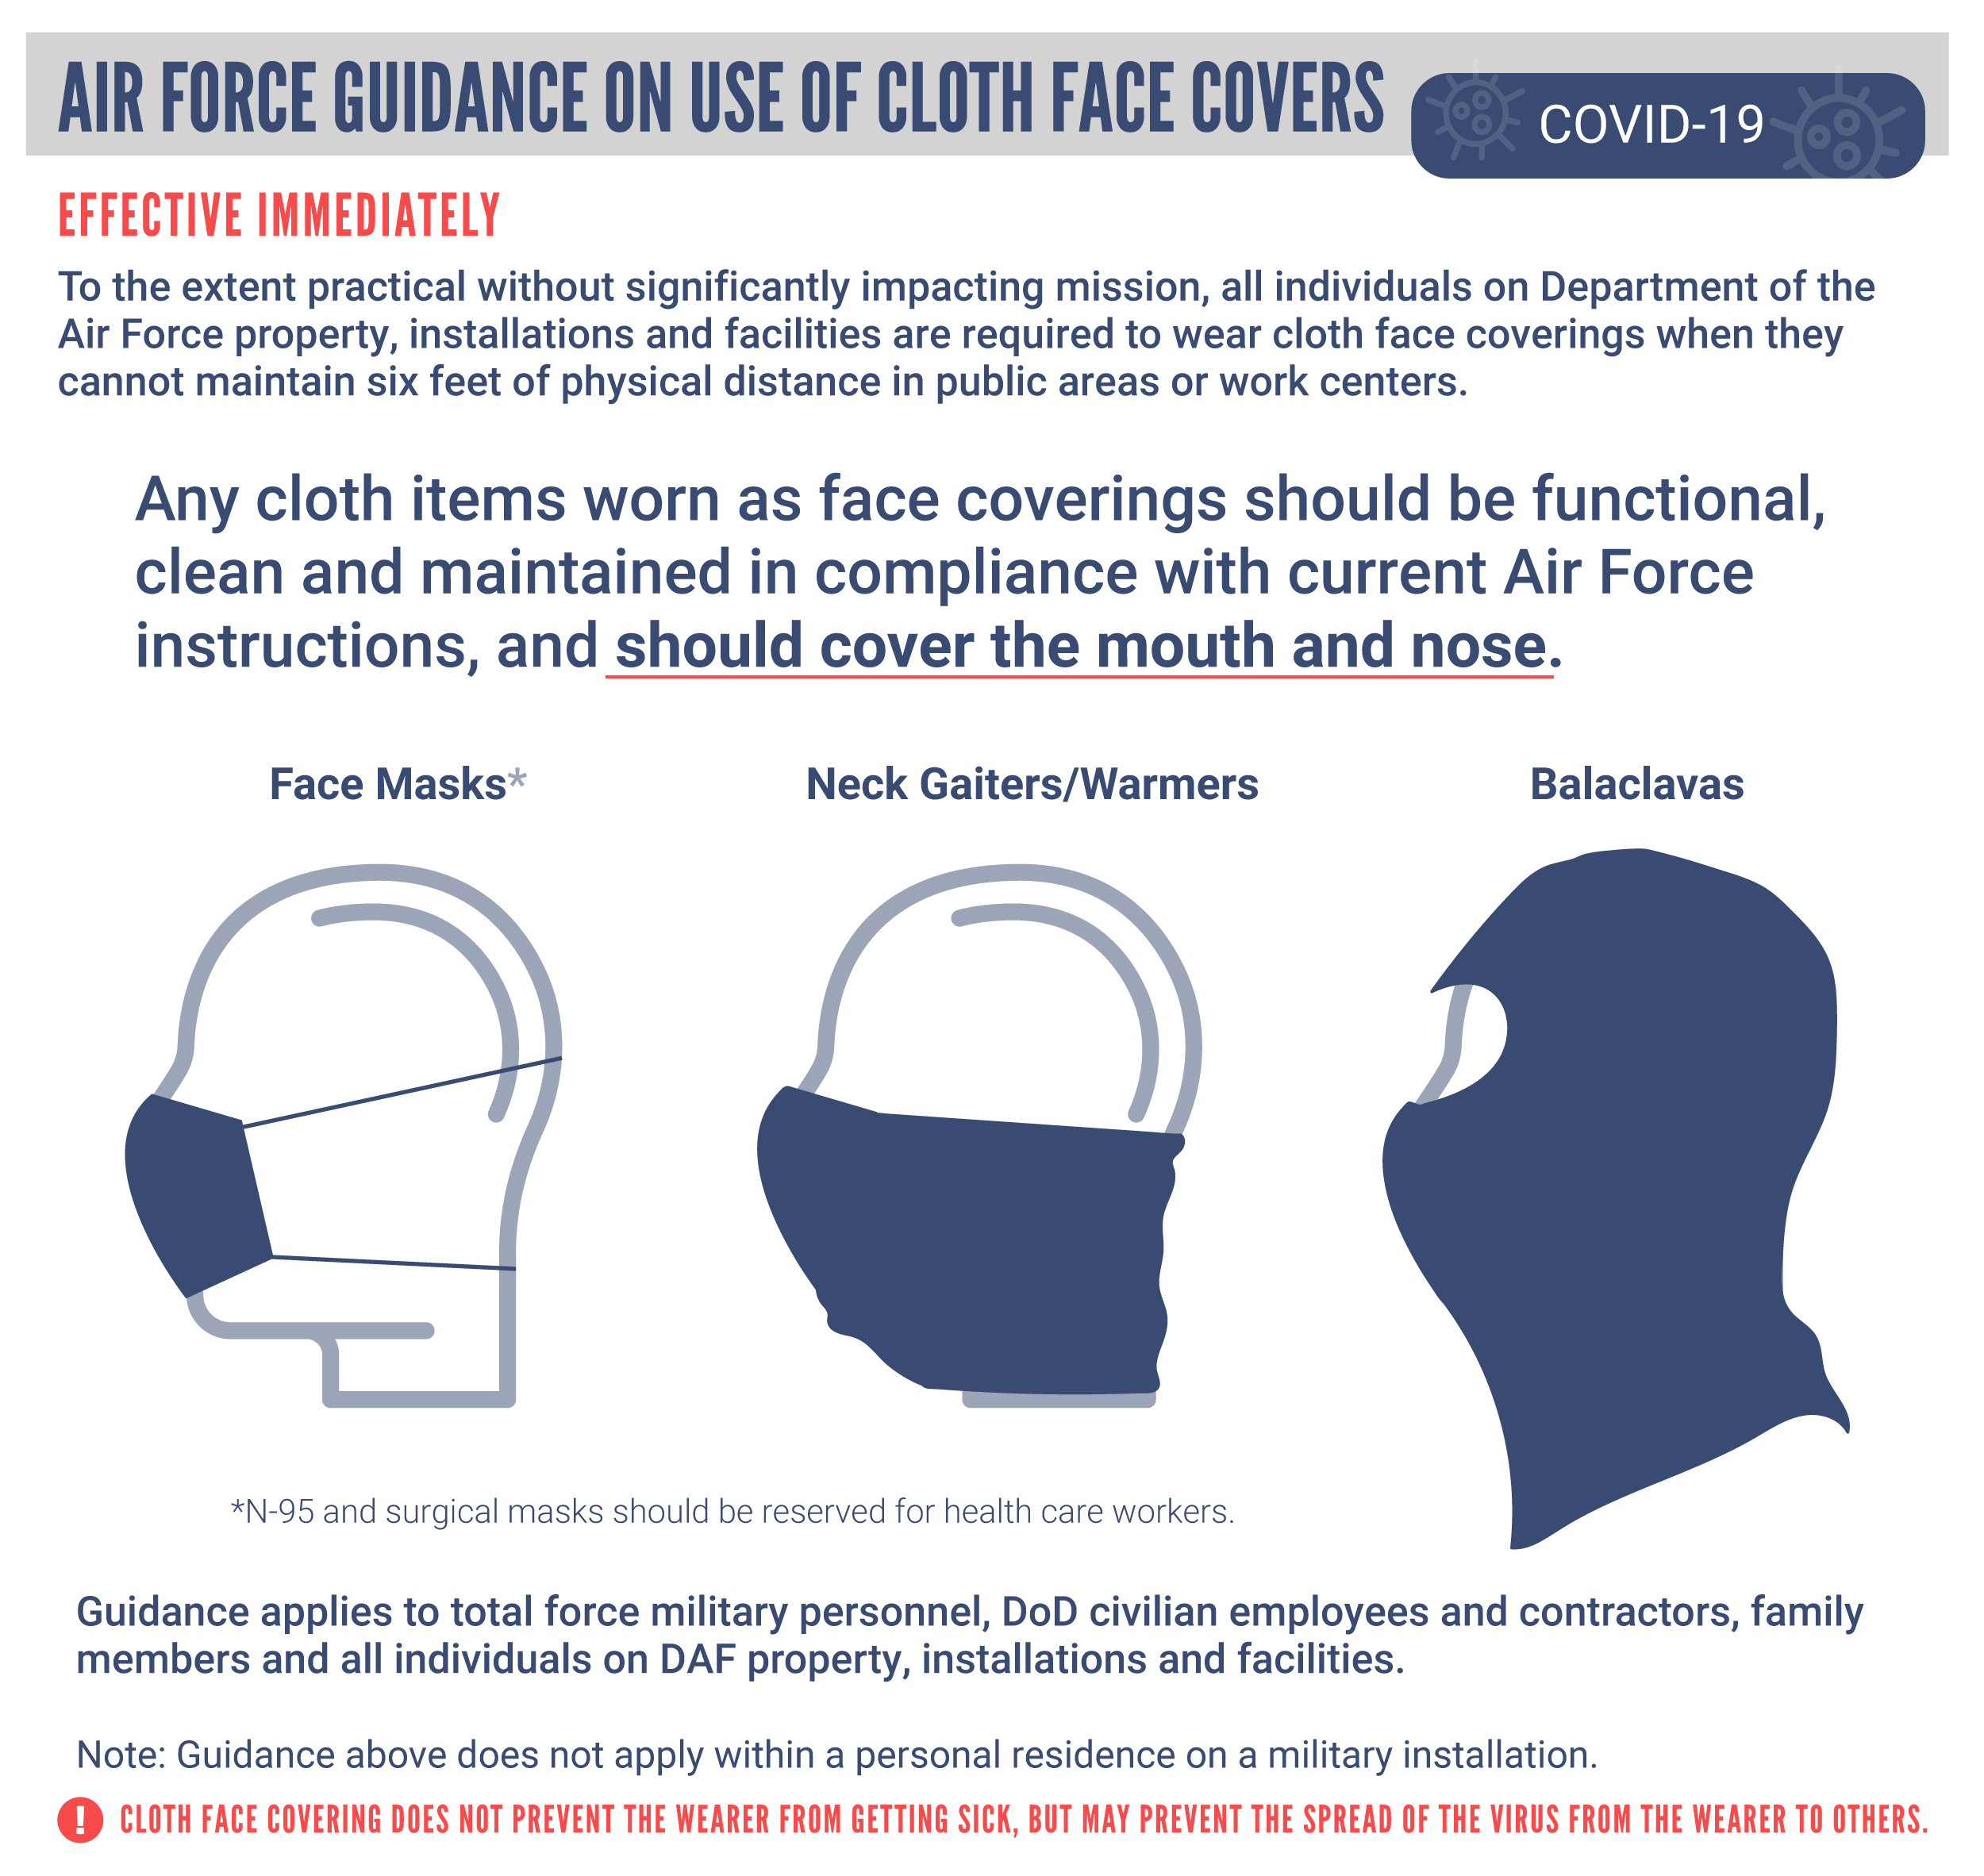 DOD's guidance on use of cloth face covers